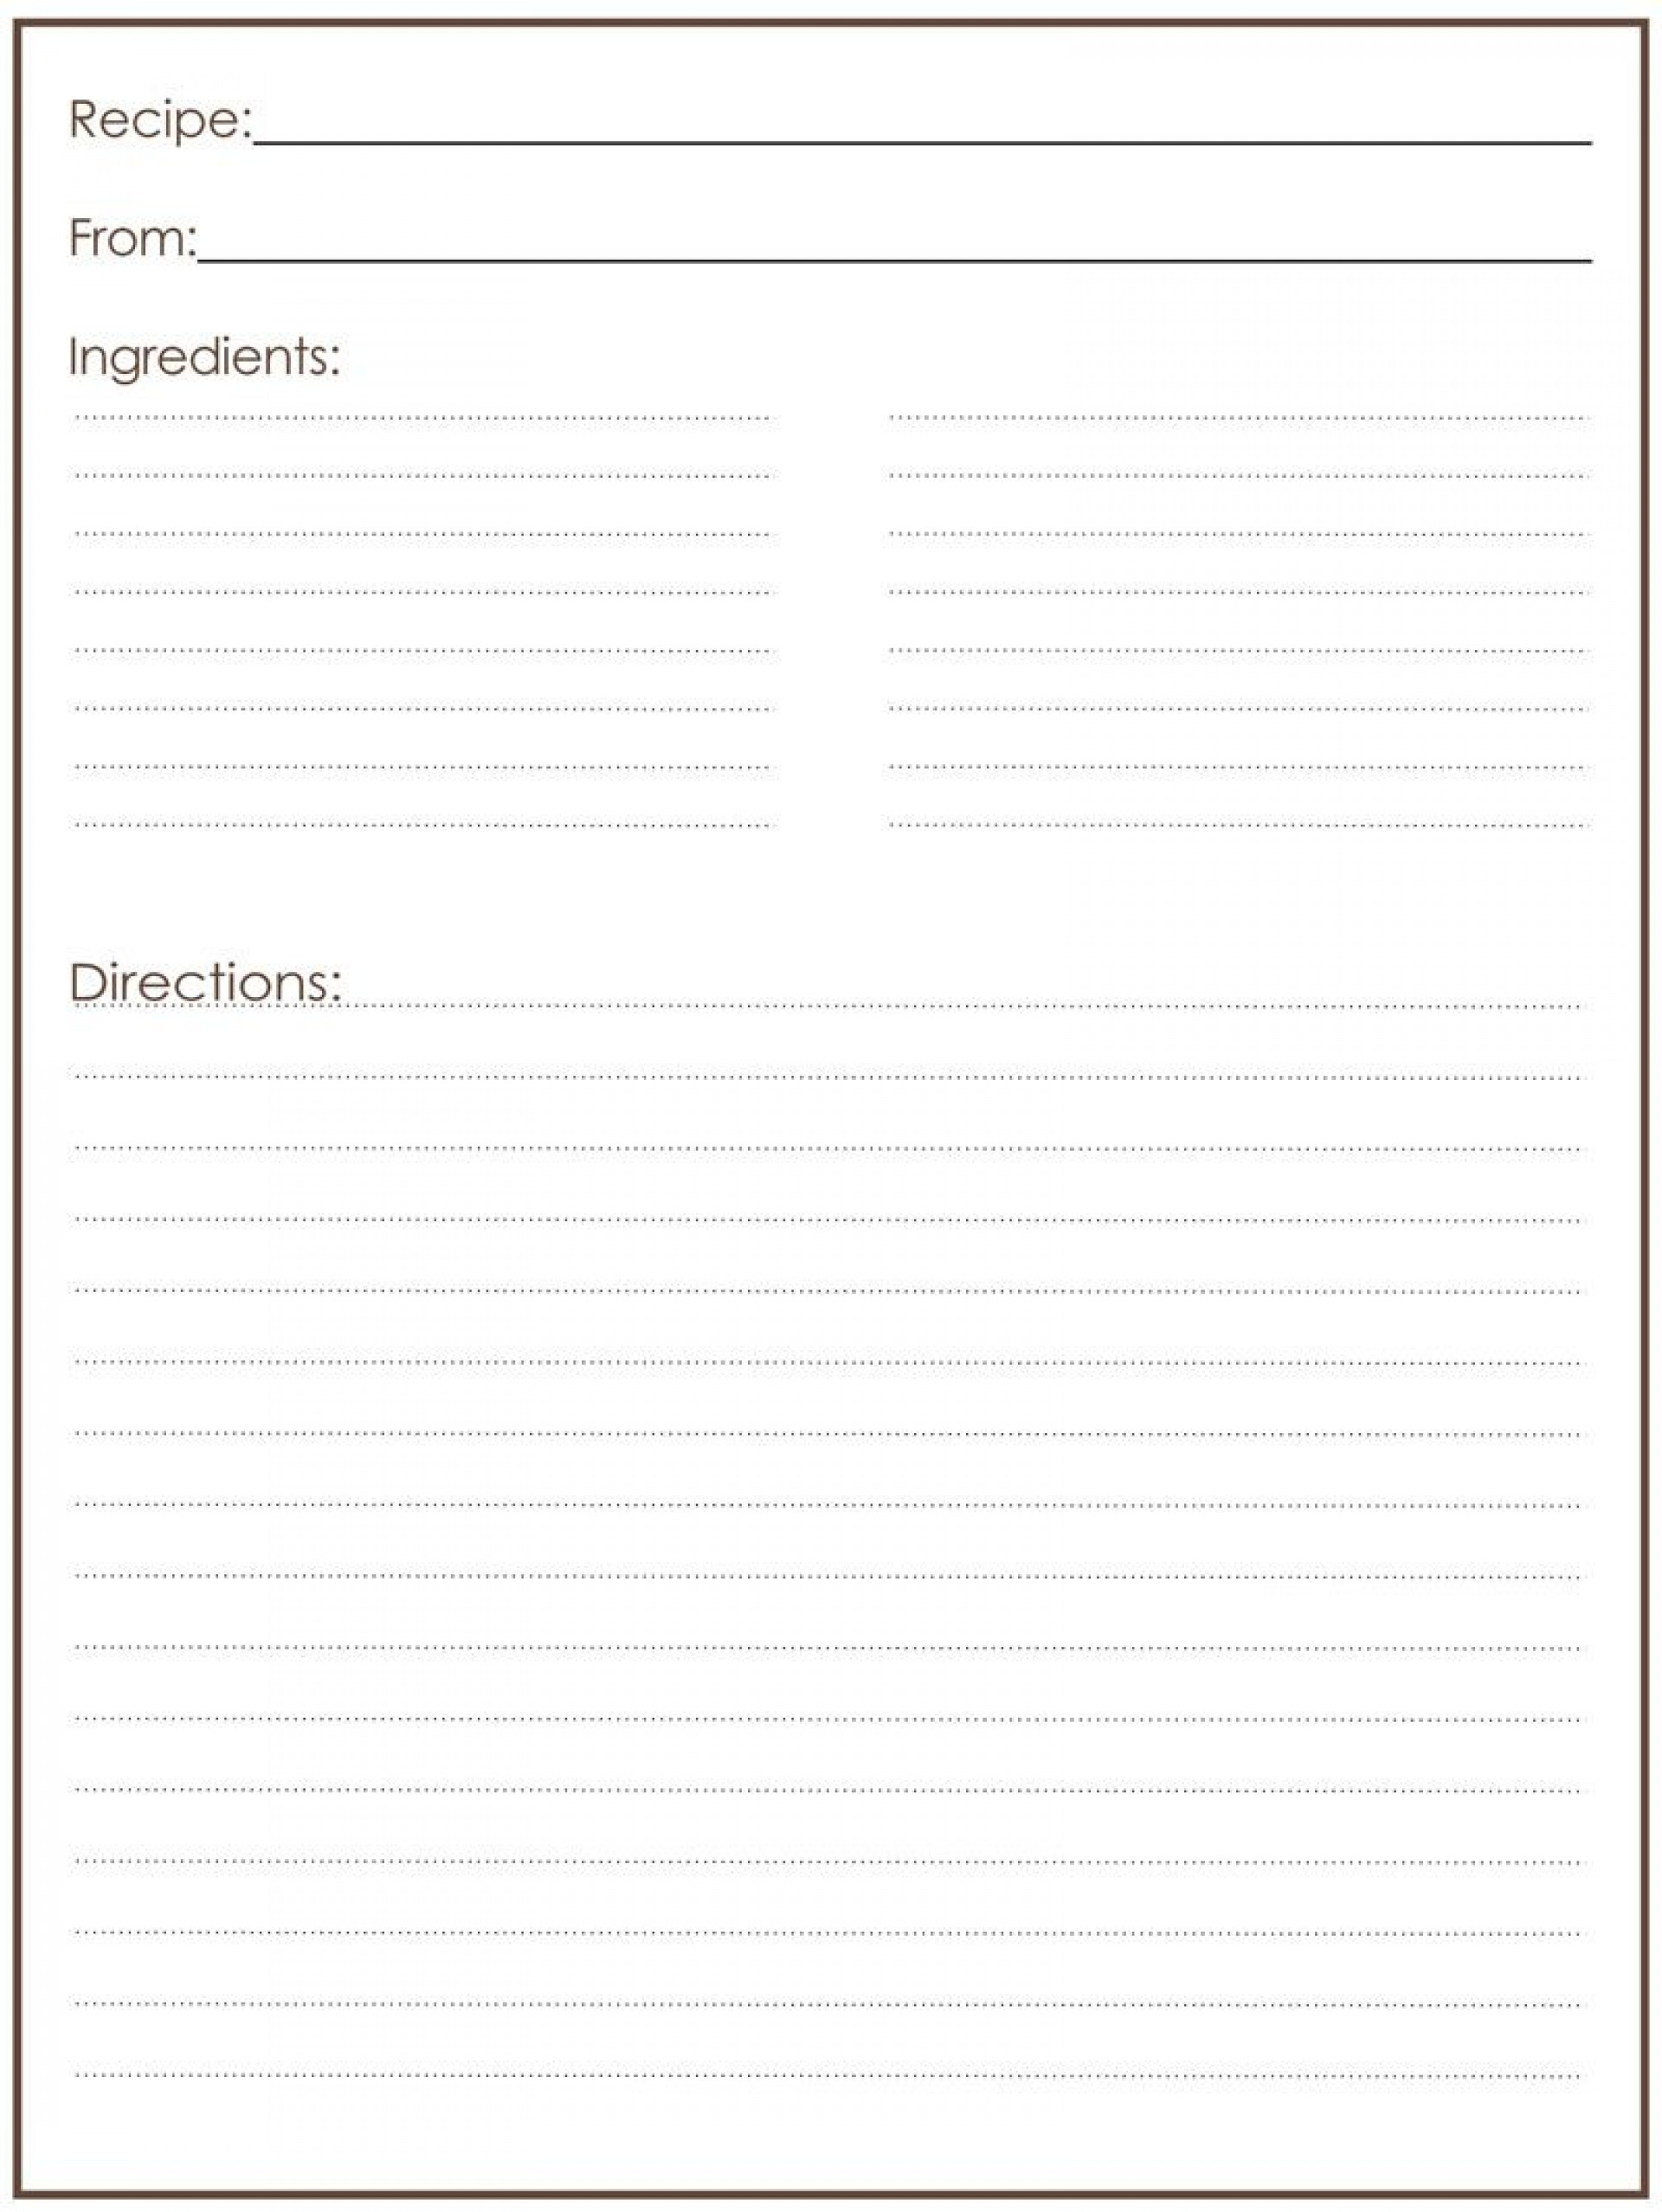 007 Unusual Free Recipe Template For Word High Resolution  Book Editable Card Microsoft 4x6 Page1920